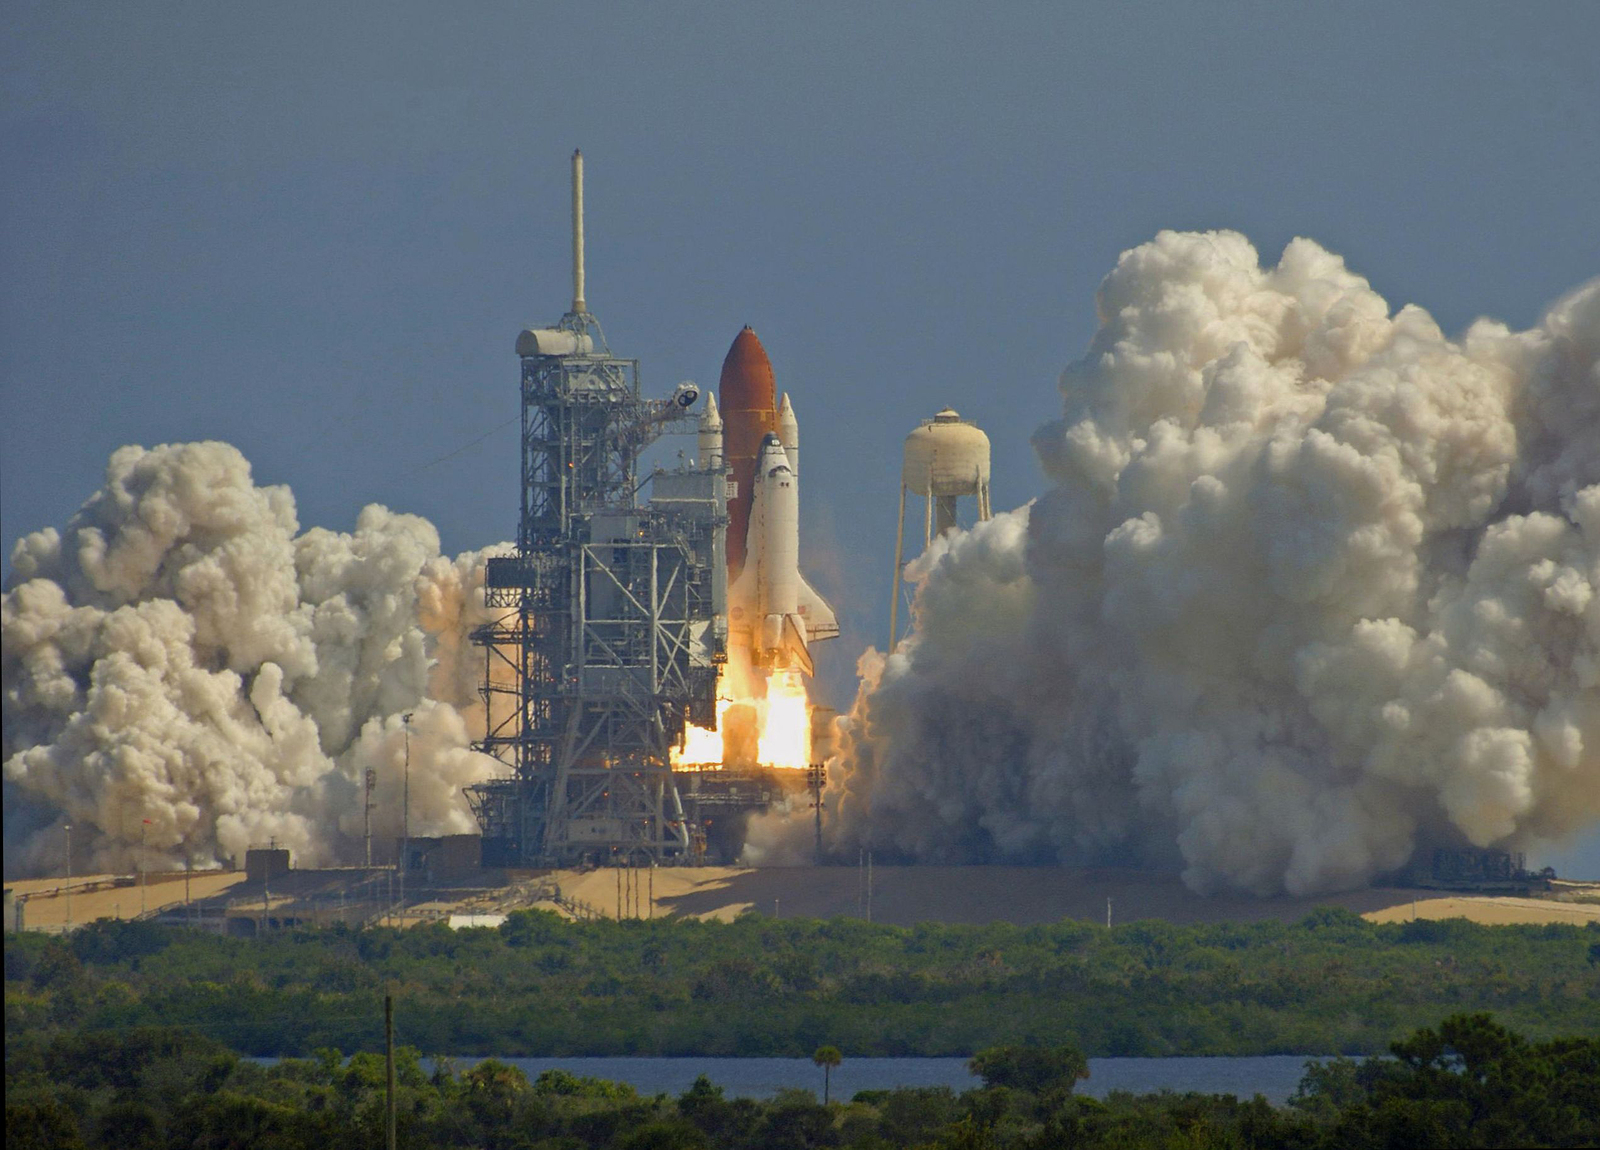 Private Business Should Lead the Way in Space Exploration ...